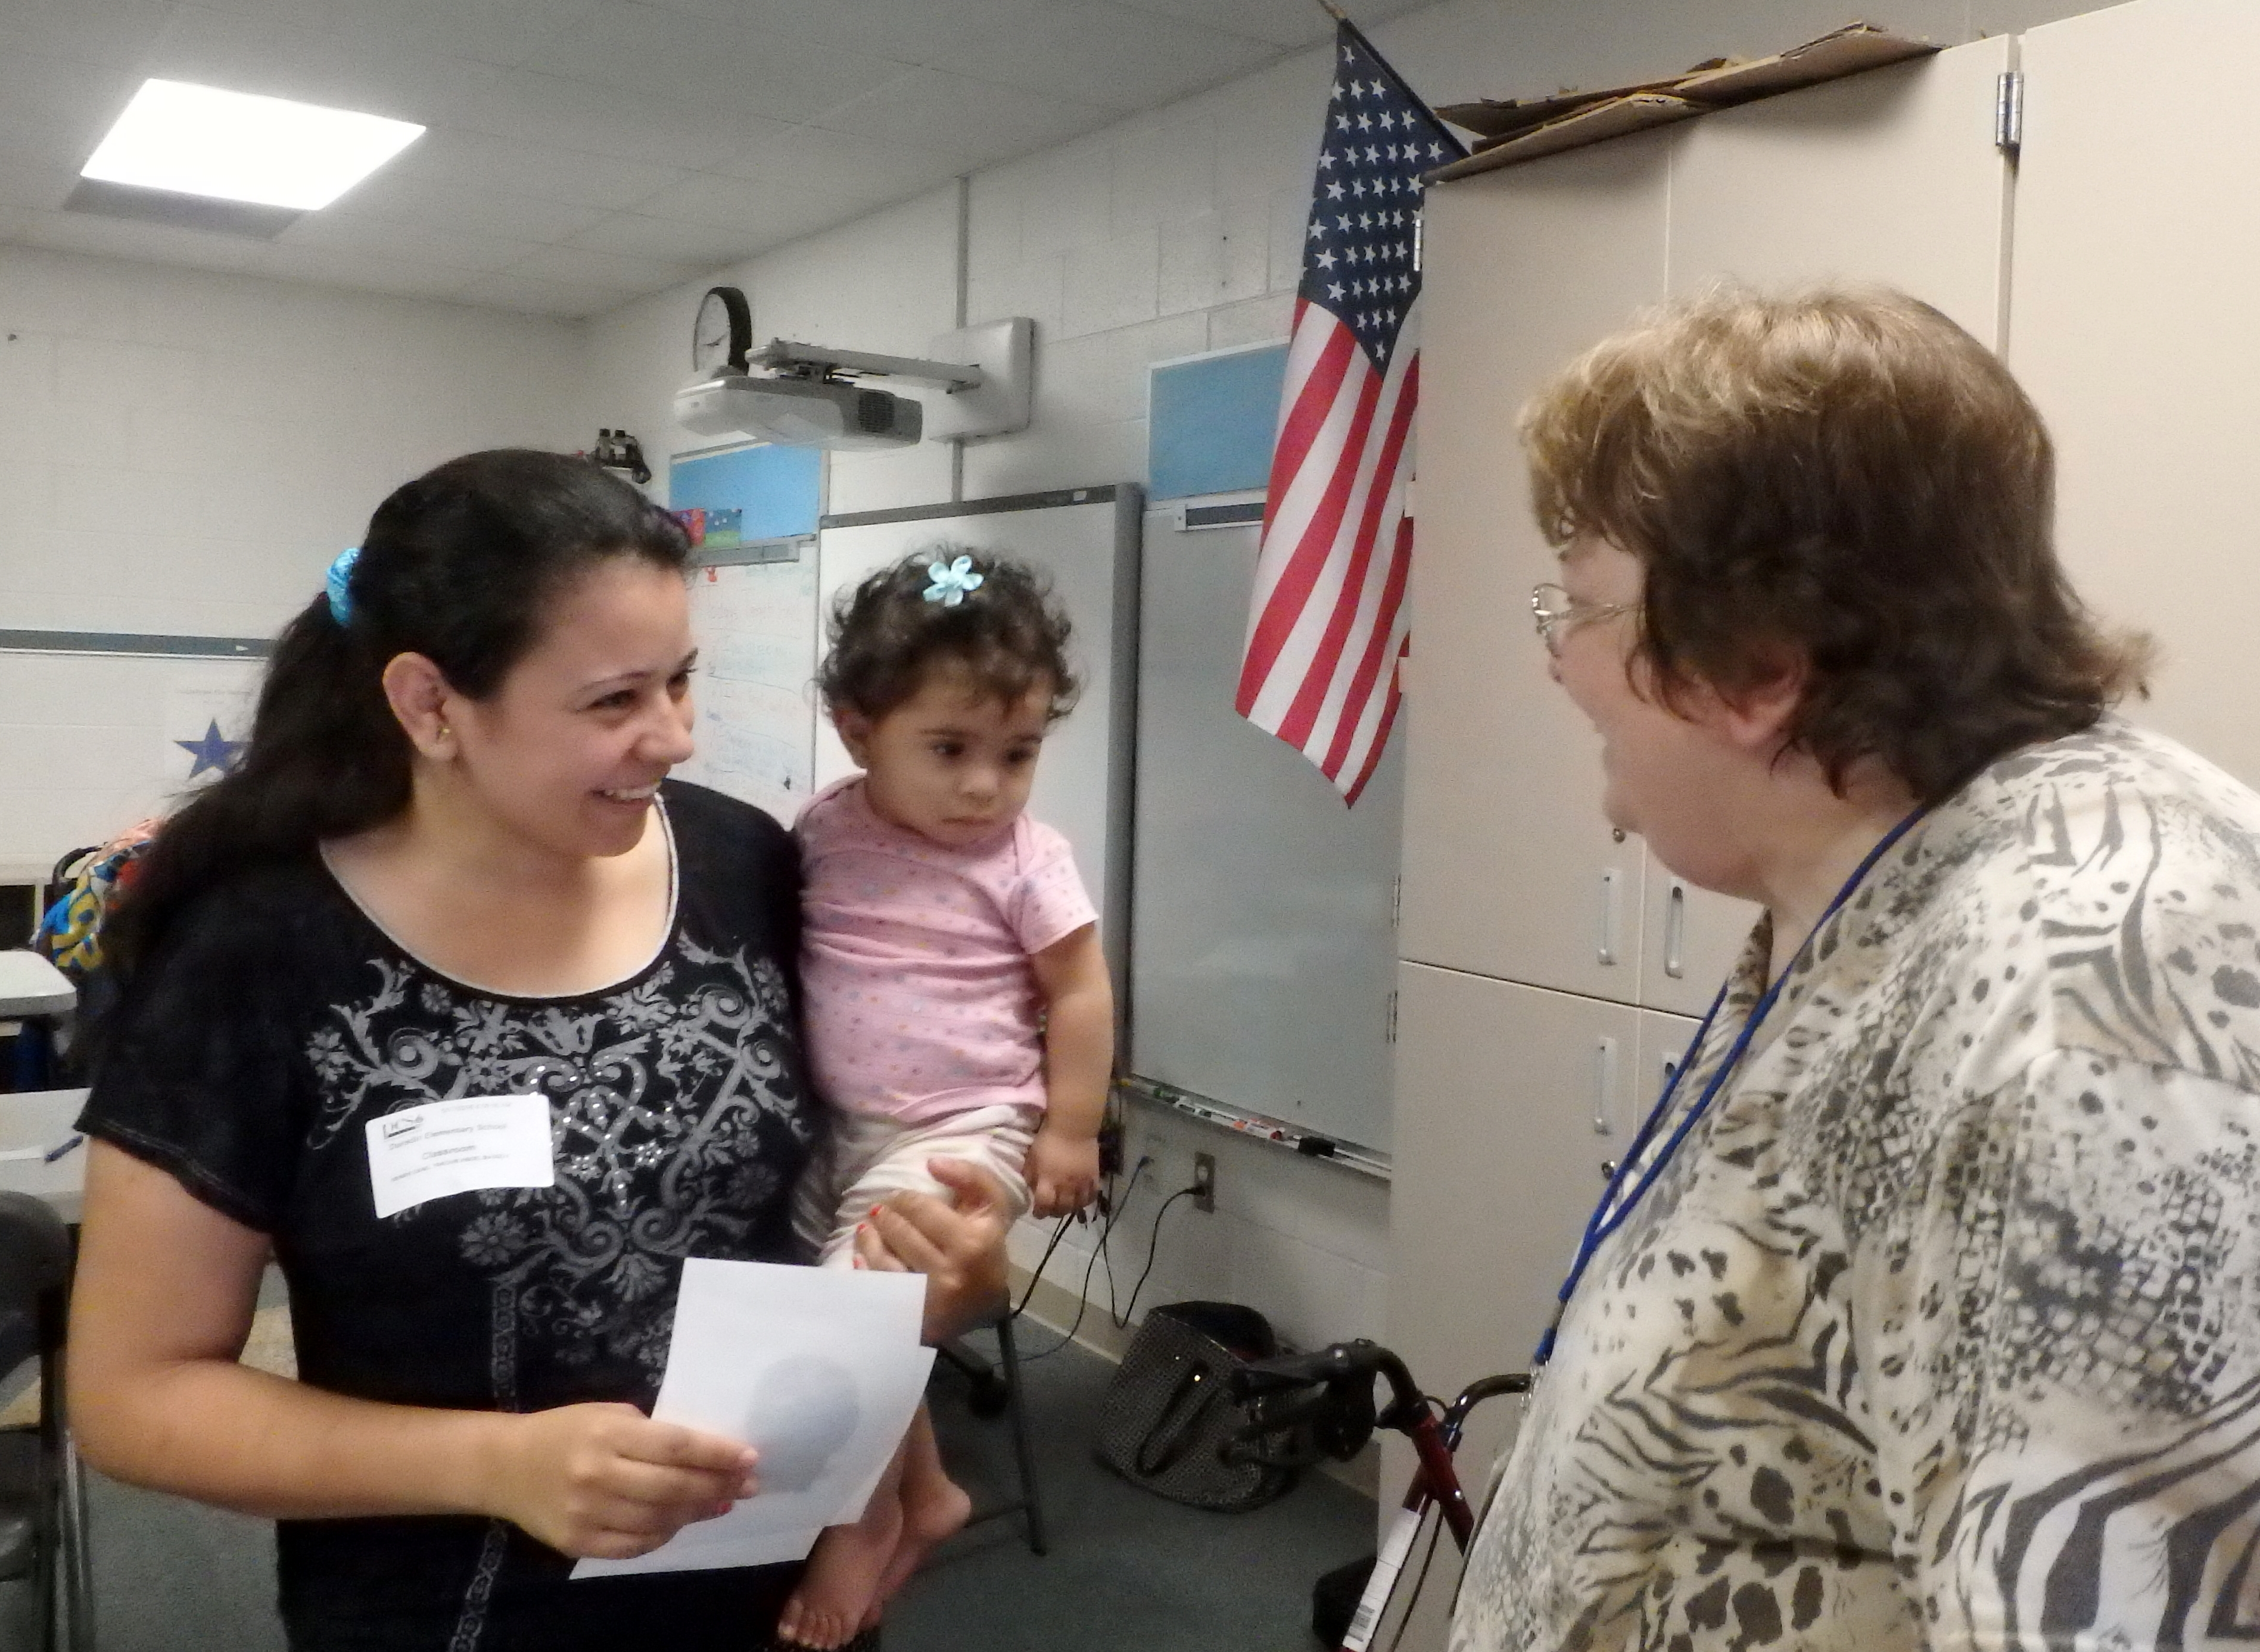 Linda Grimshaw talks with a student and her daughter at Dunedin Elementary School